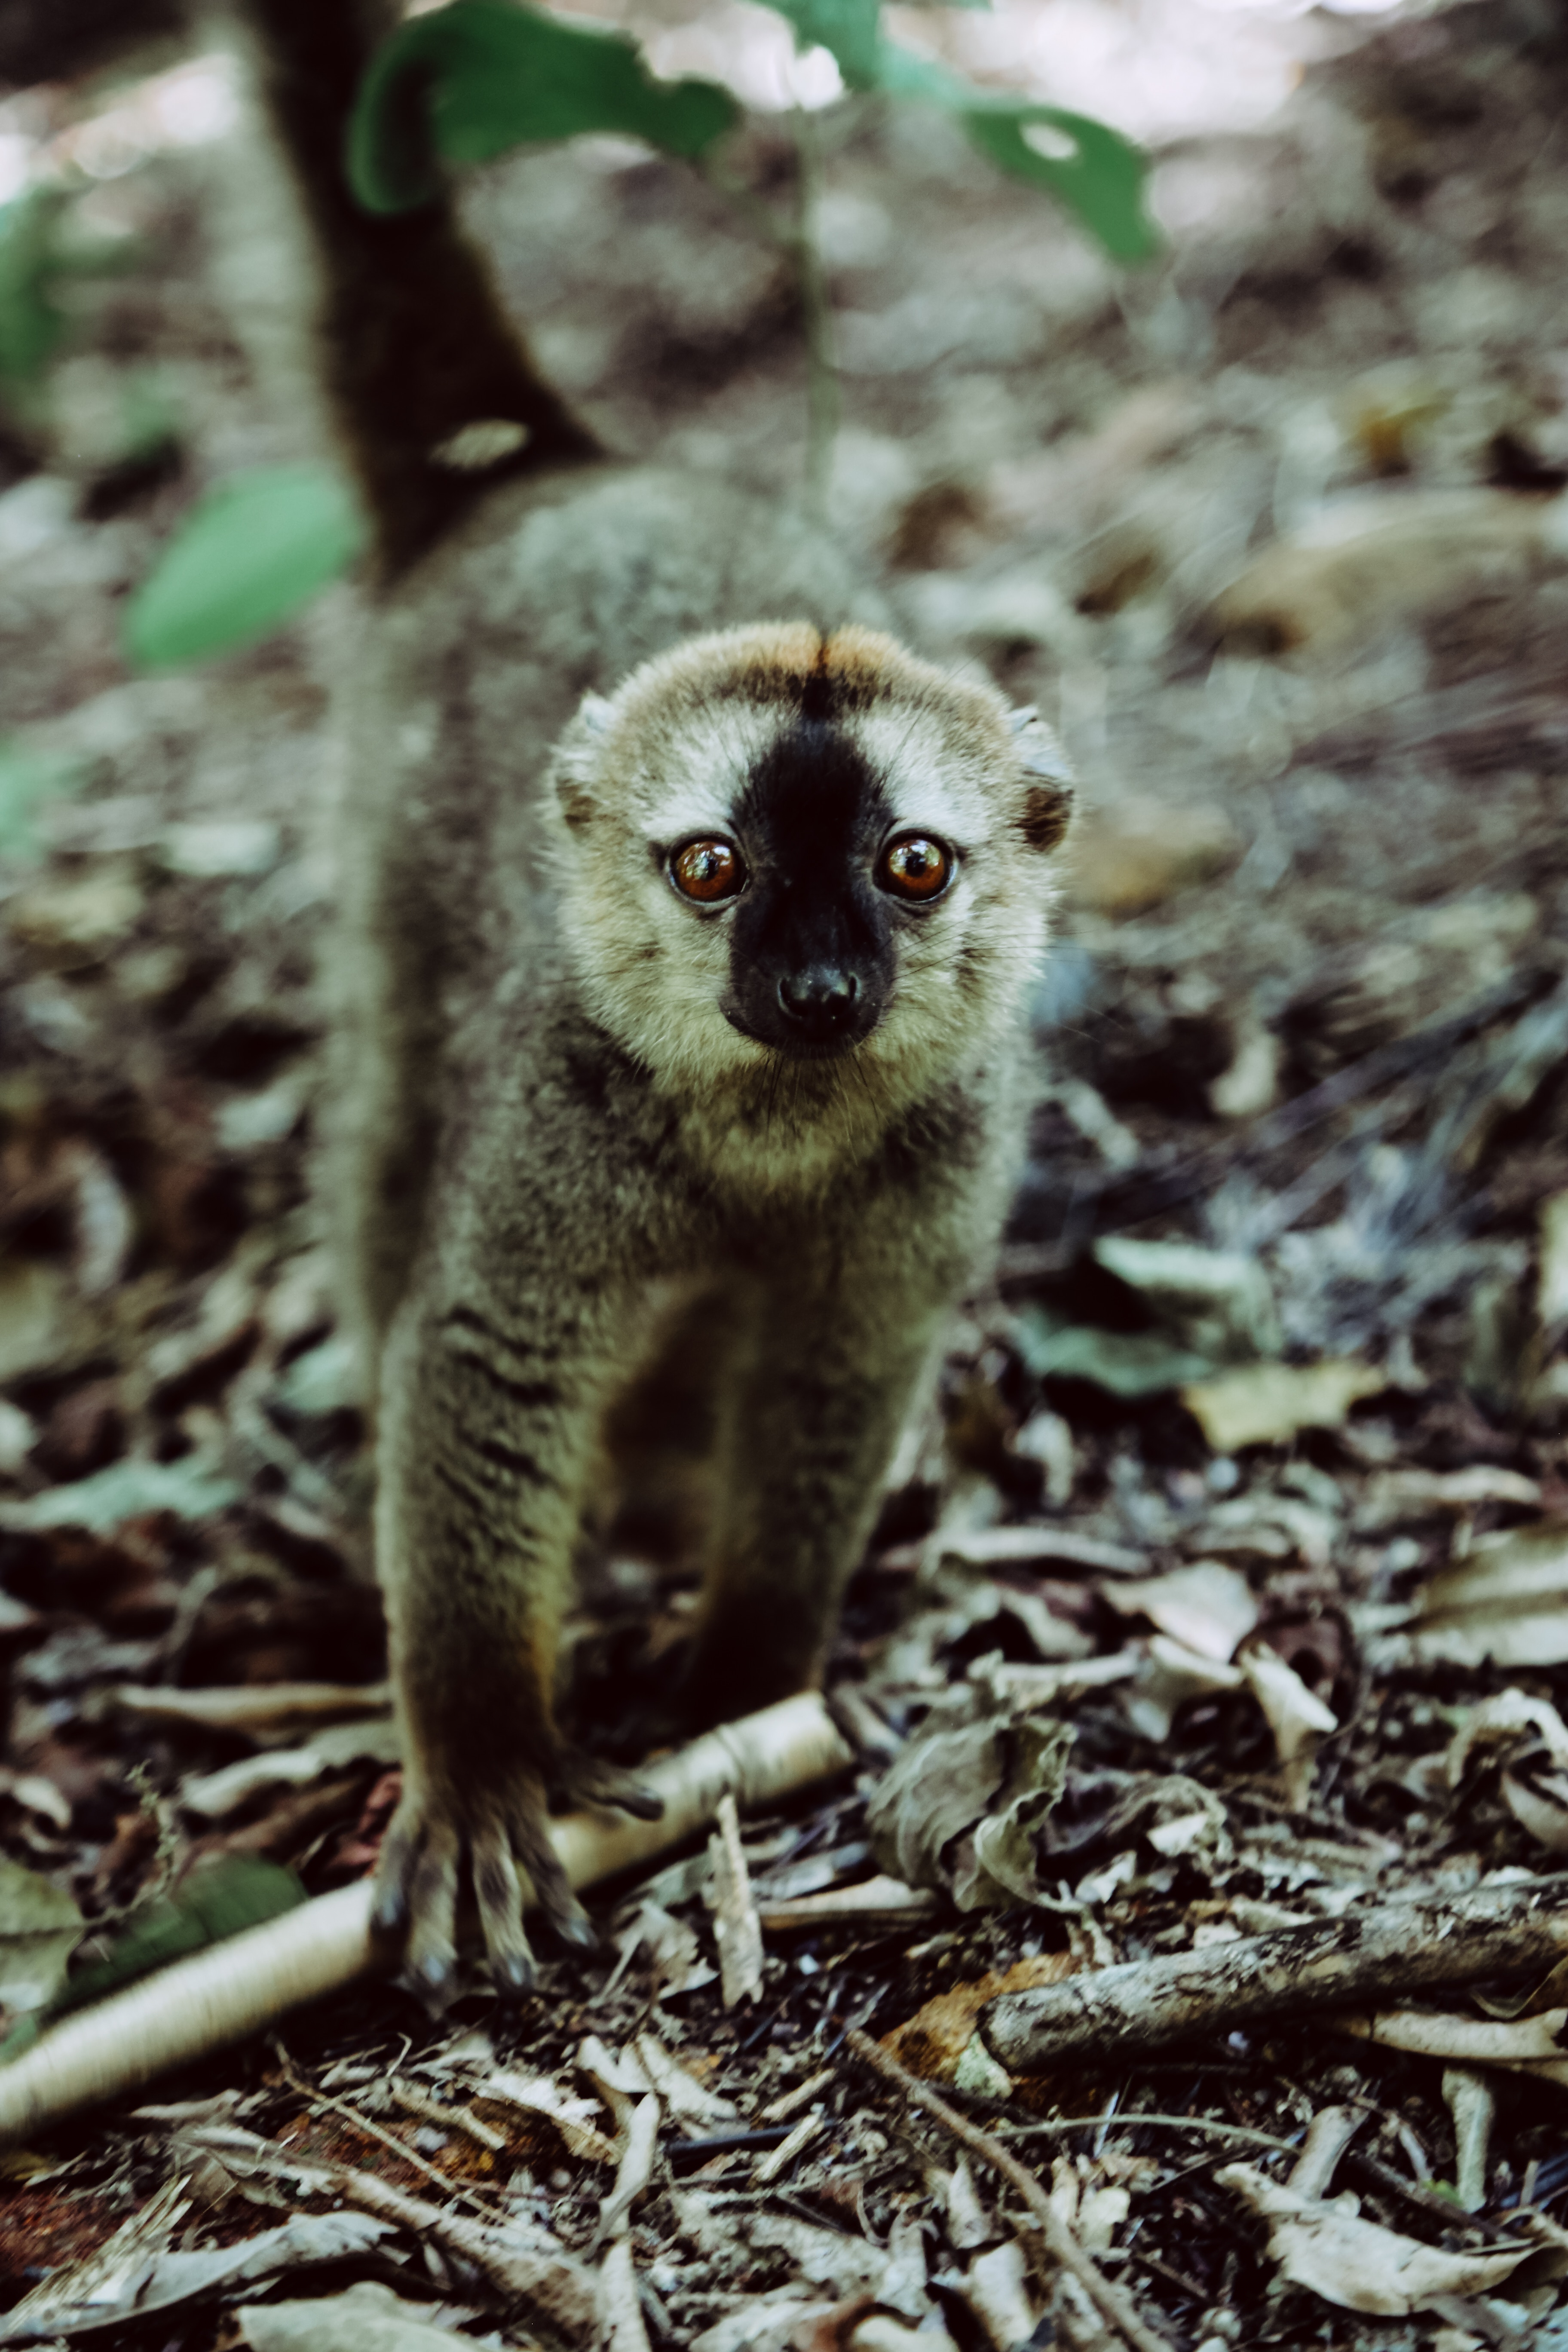 66779 download wallpaper Animals, Lemur, Animal, Sight, Opinion, Primate, Wildlife screensavers and pictures for free